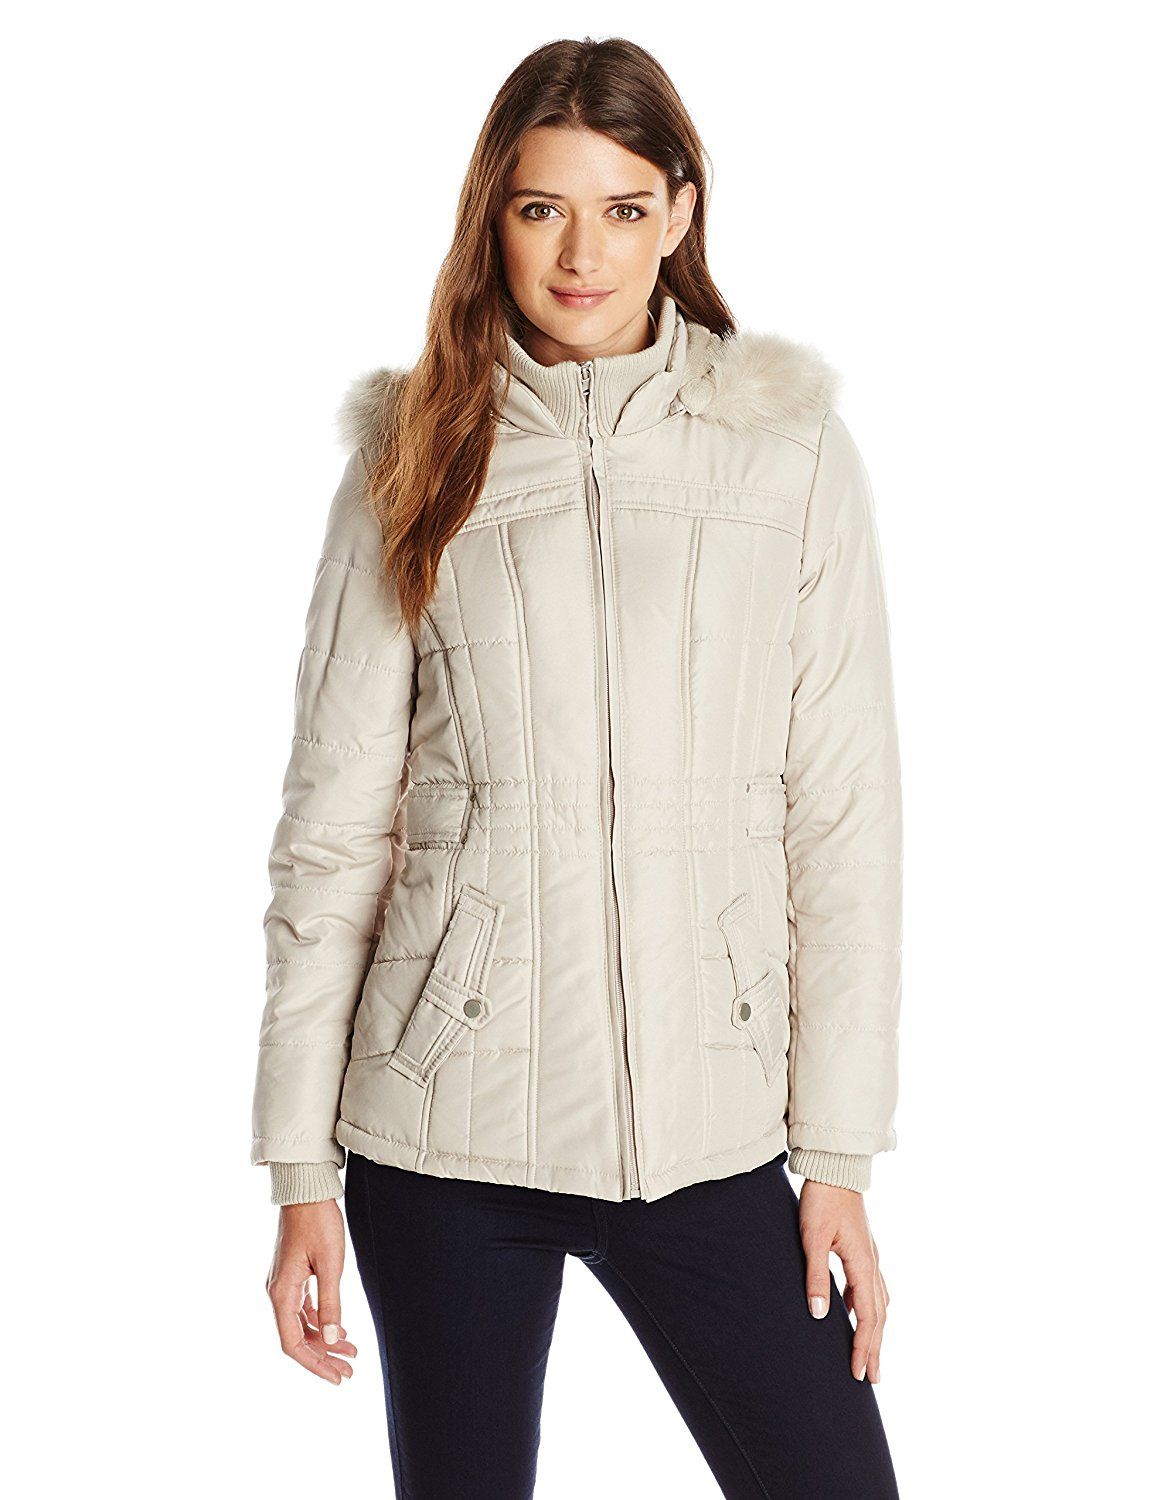 Weathertamer Women's Puffer Jacket with Faux FurTrimmed